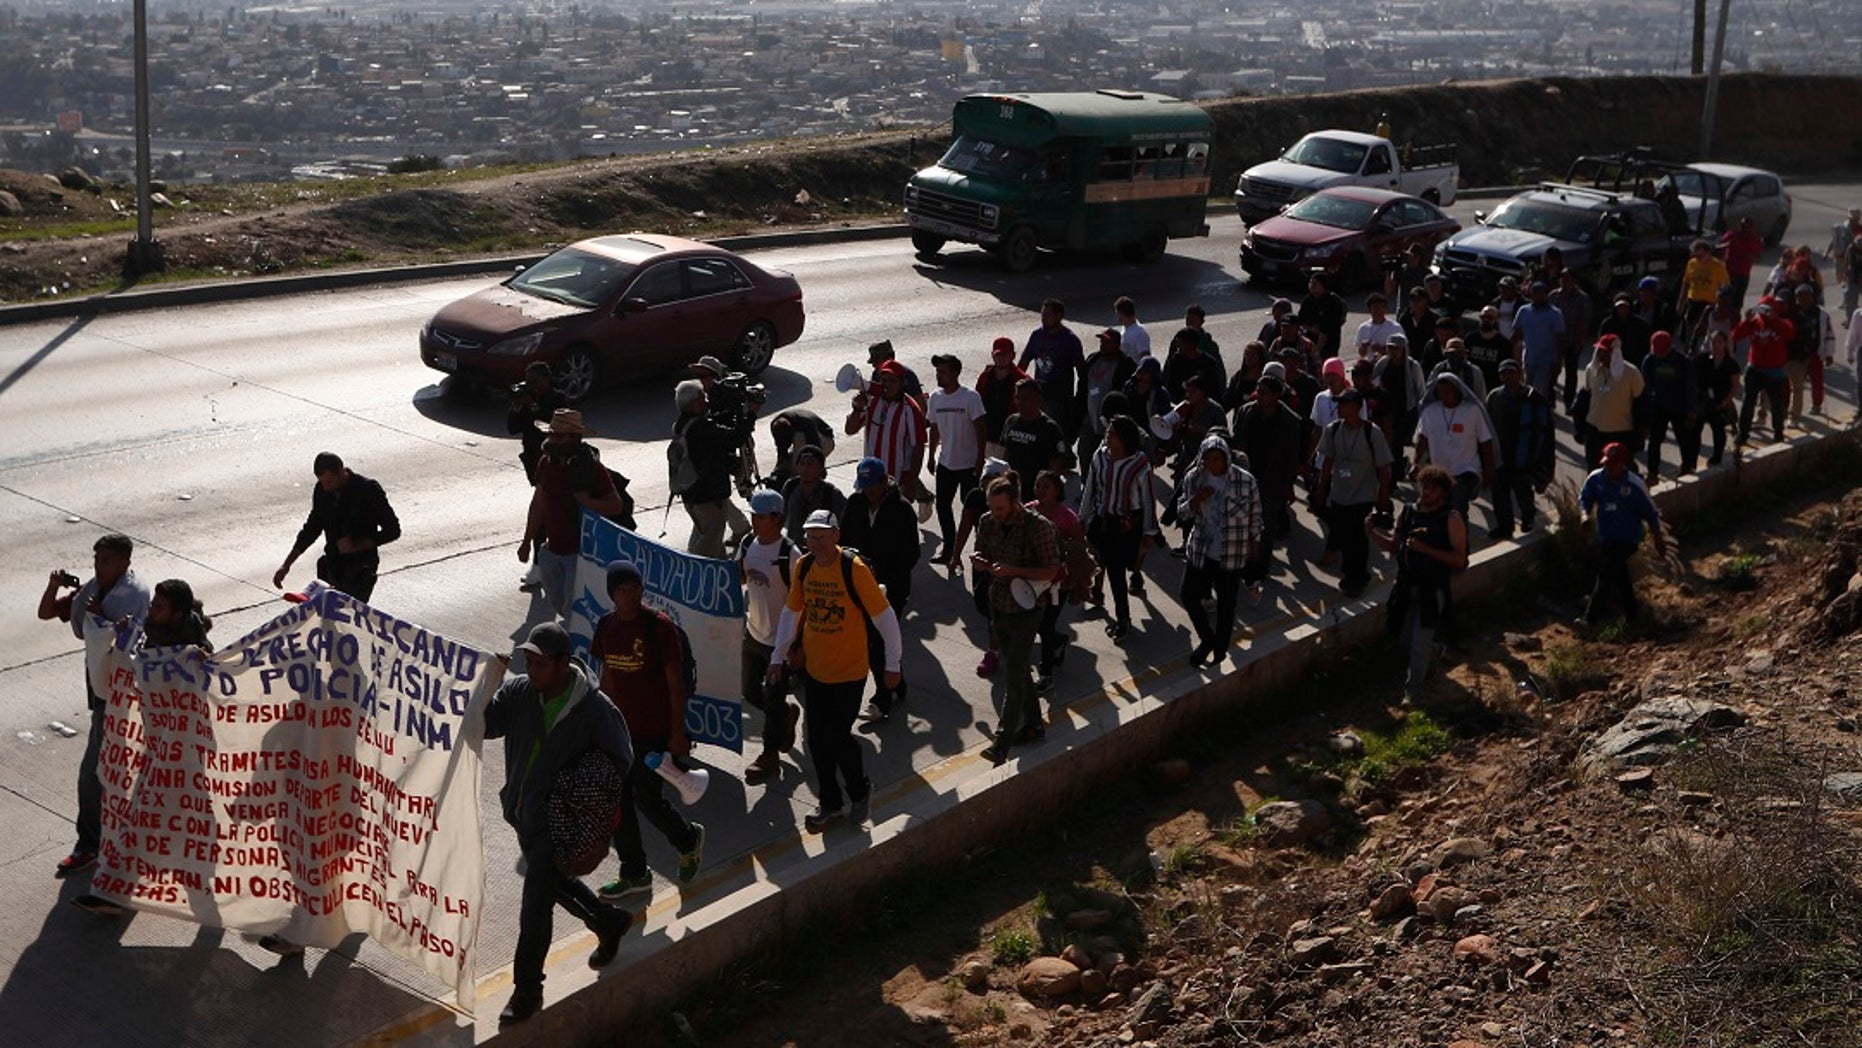 Central American migrants march to the U.S. consulate in Tijuana, Mexico, Tuesday, Dec. 11, 2018. [AP Photo/Moises Castillo)